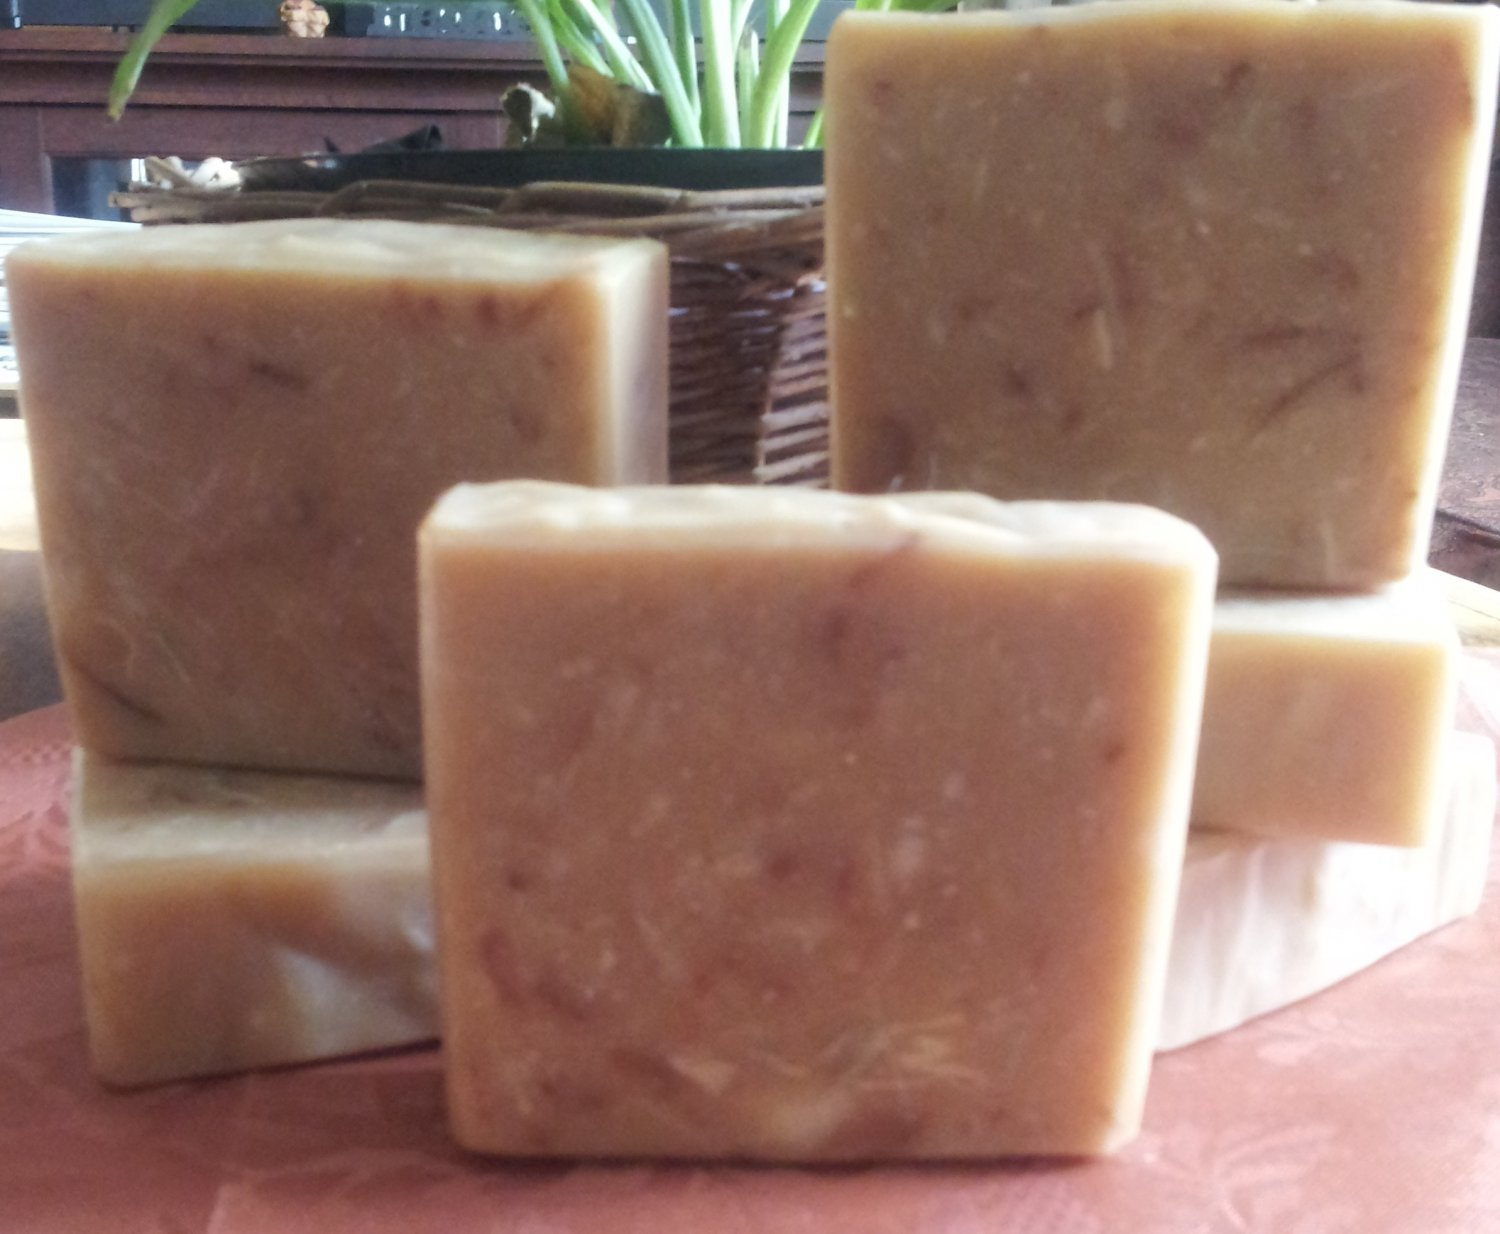 Sunshine Hippie Soap